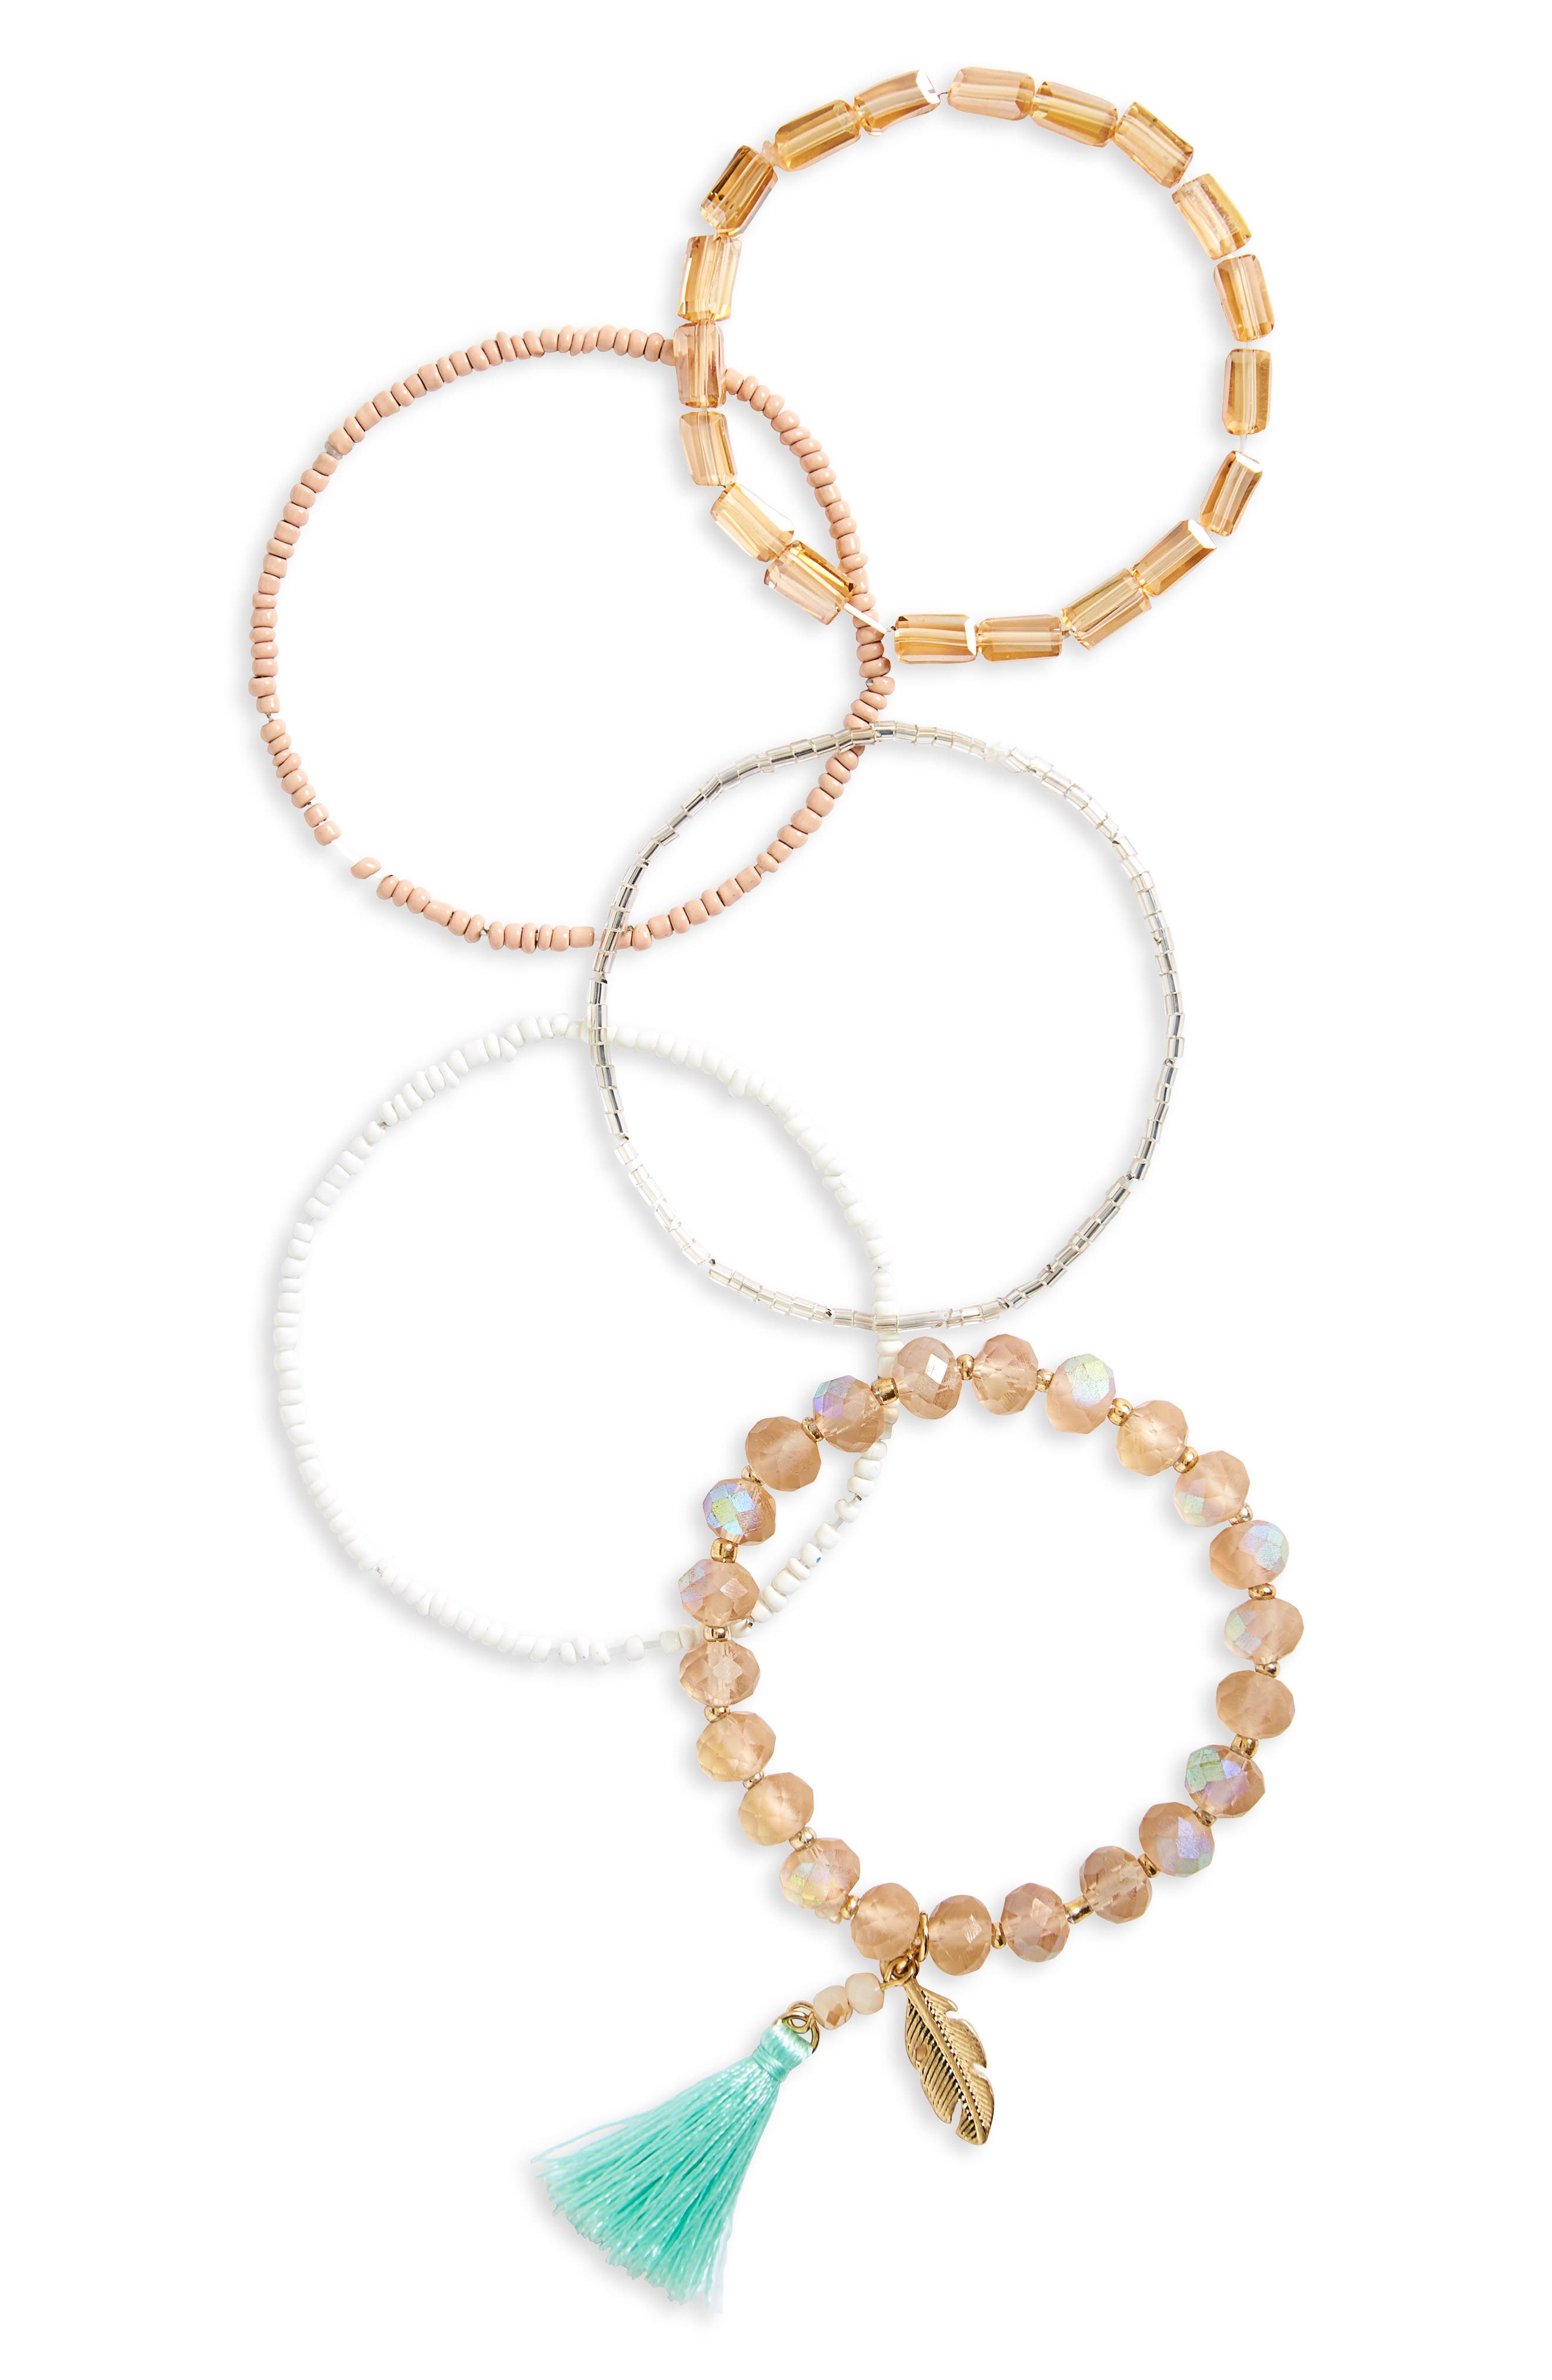 Panacea Set of 5 Assorted Stretch Bracelets